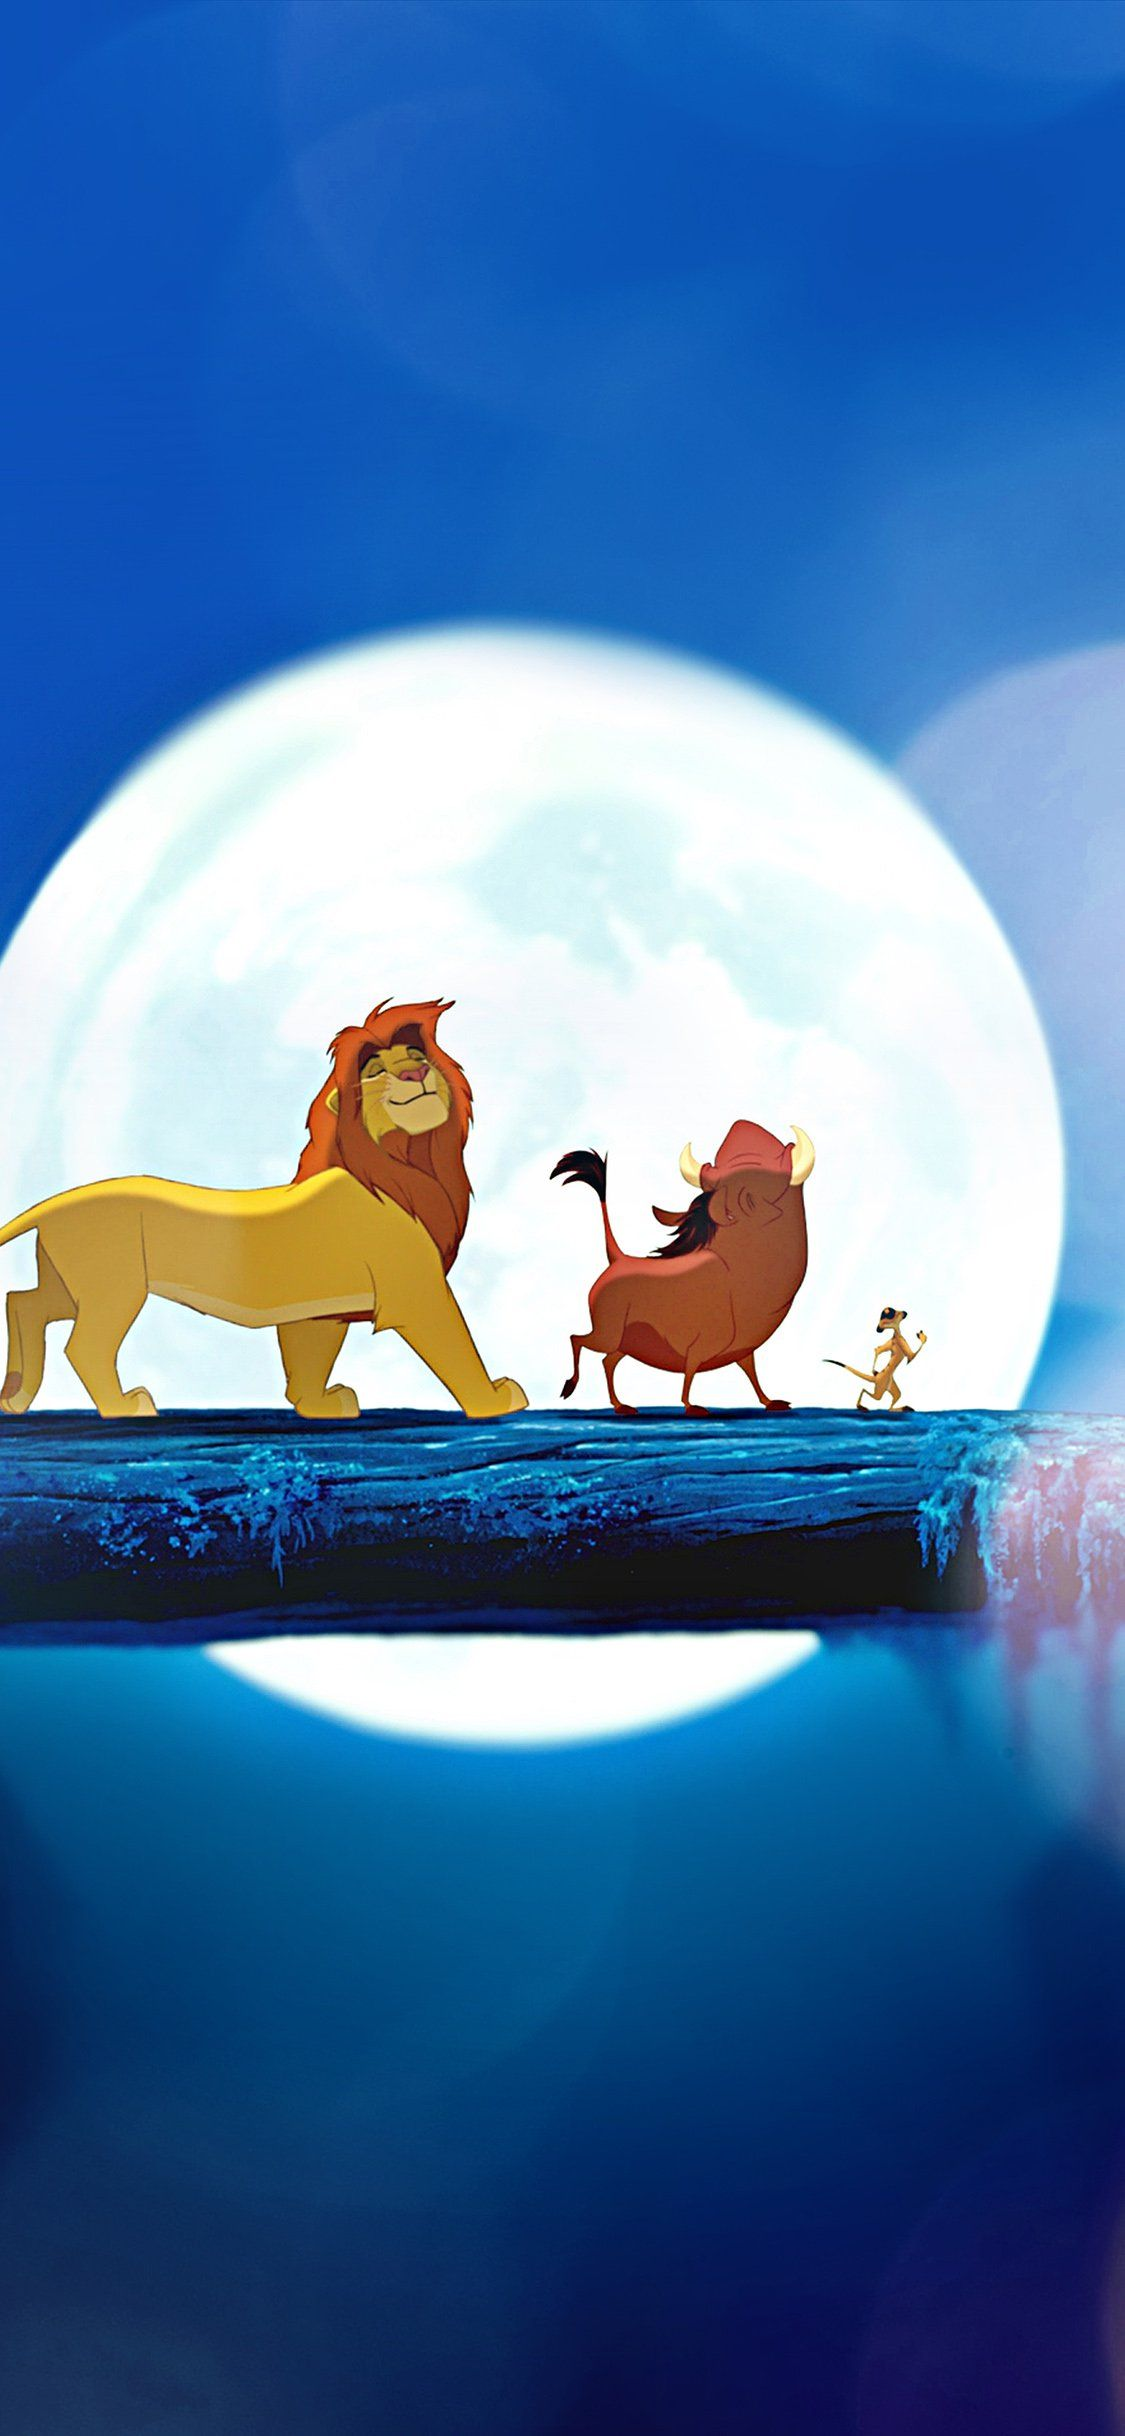 Lion King Iphone Wallpapers Top Free Lion King Iphone